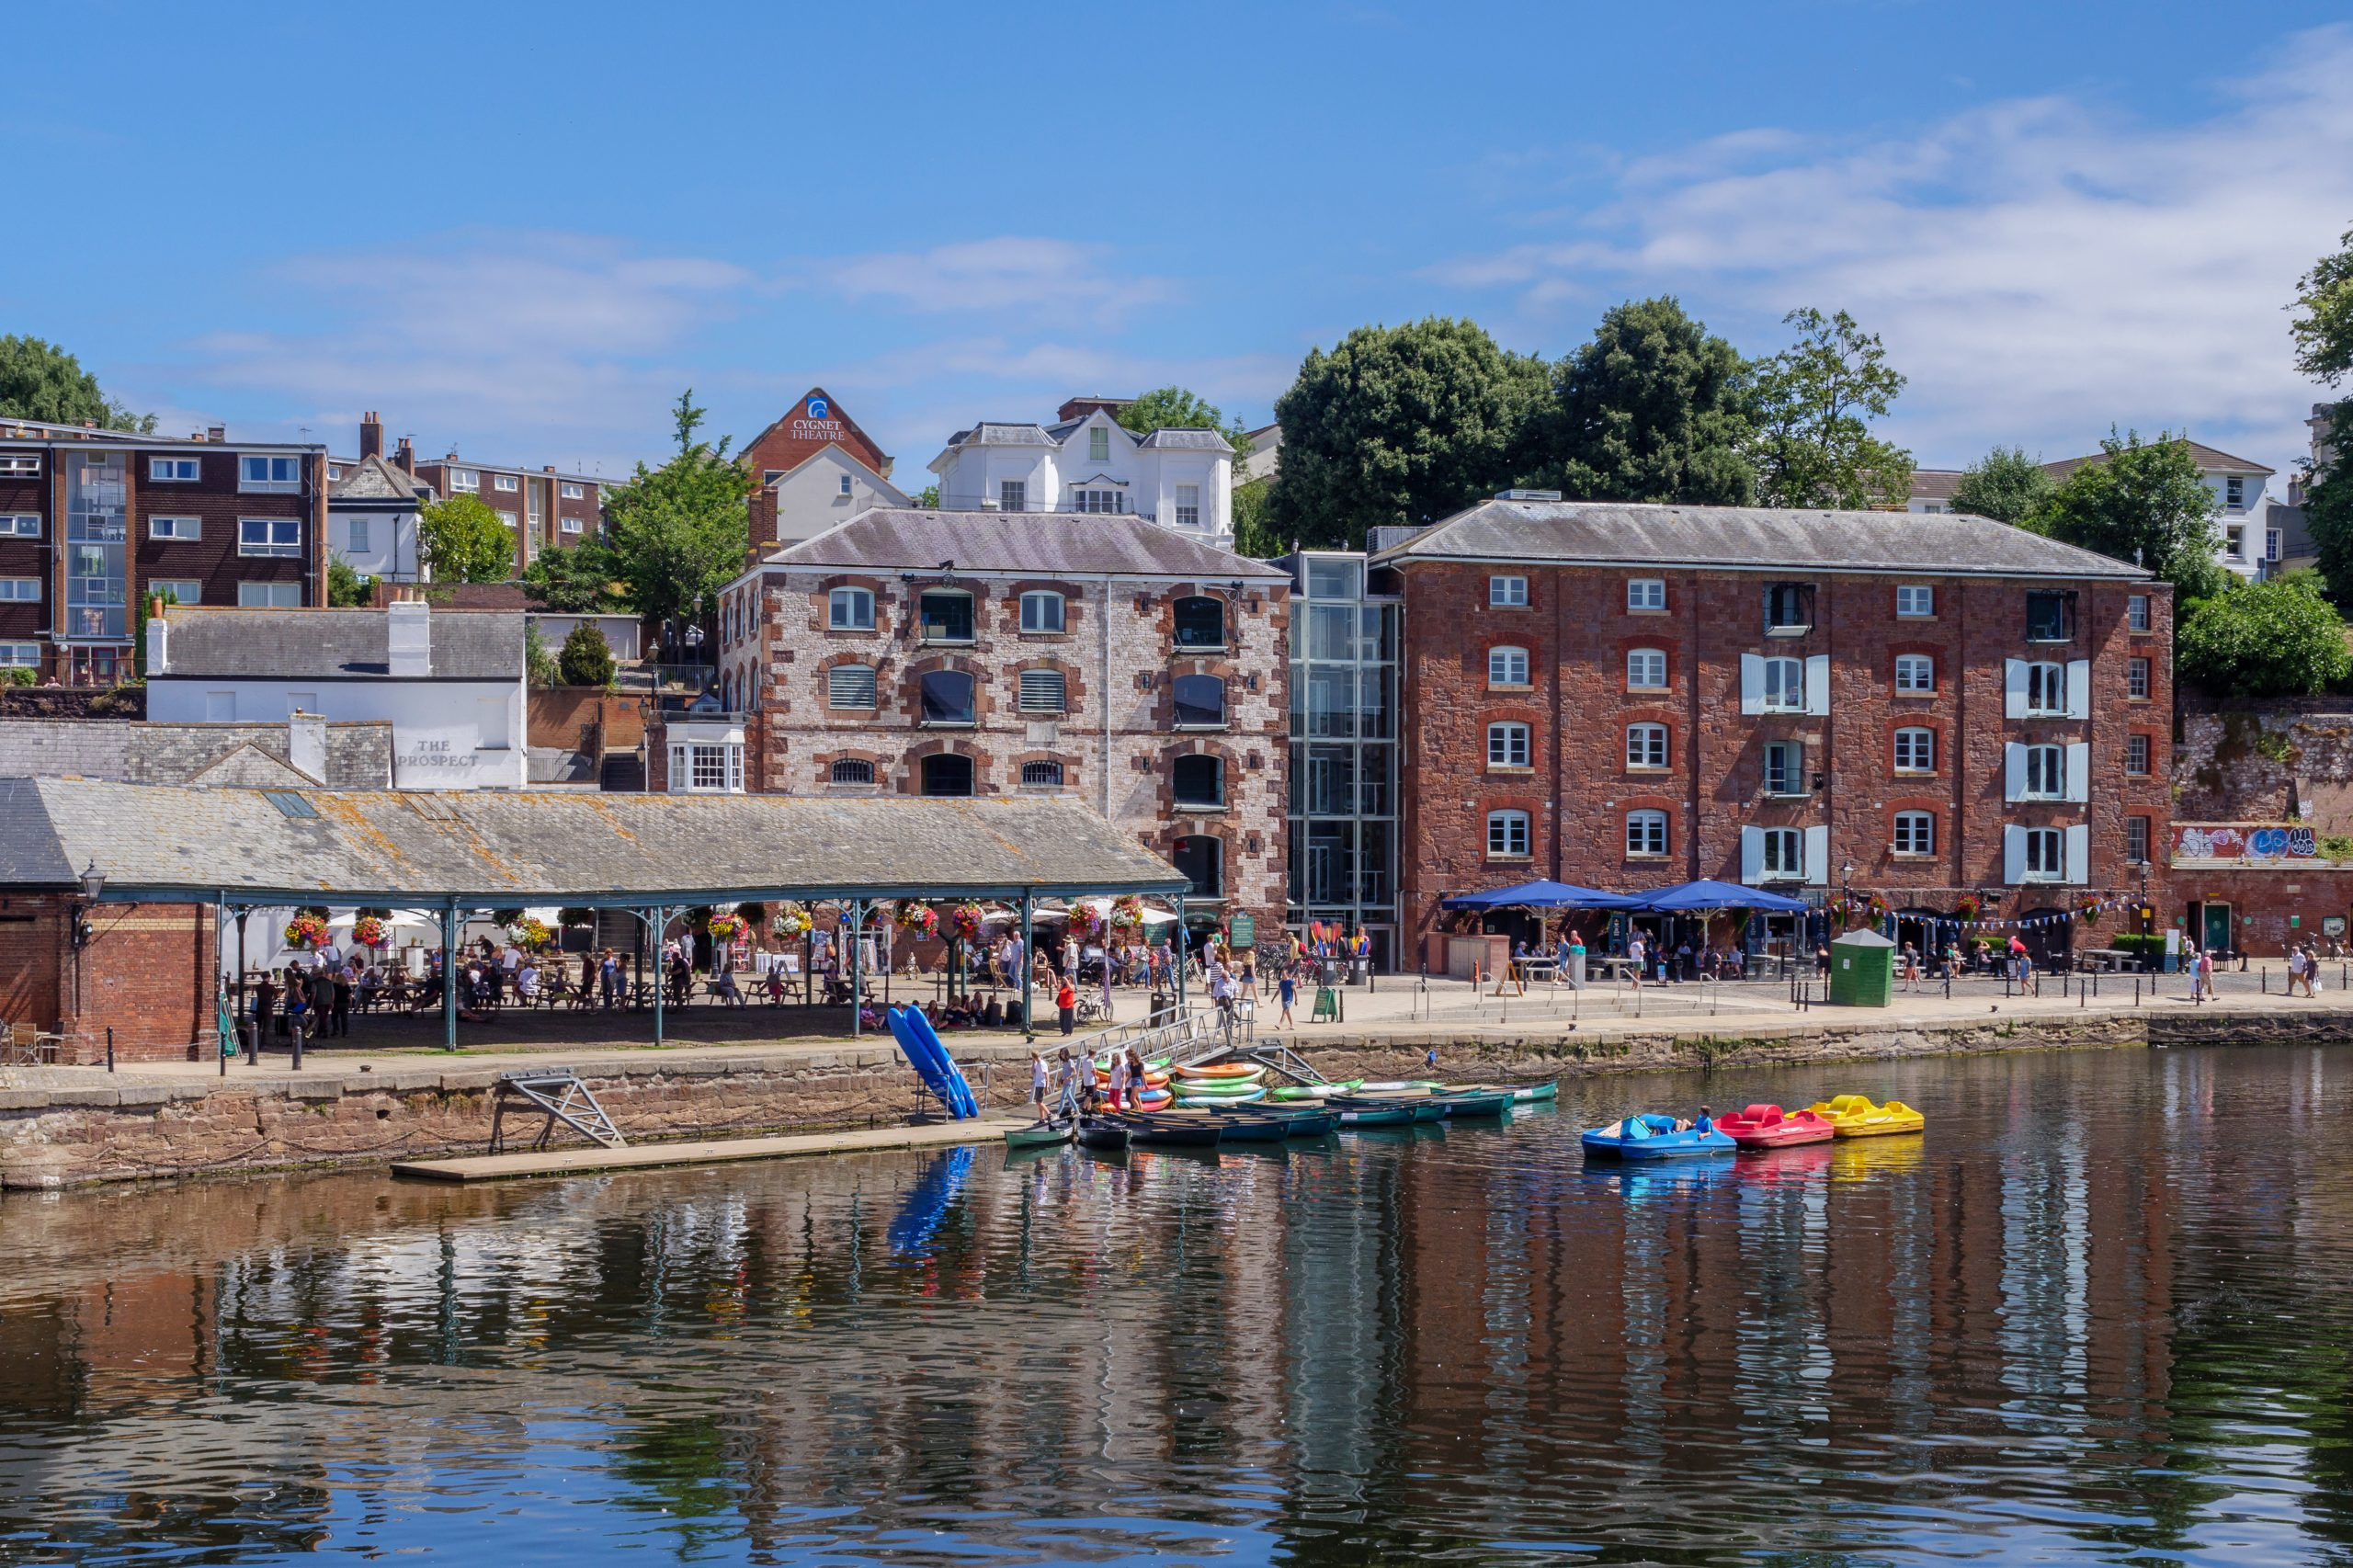 The Exeter Quay